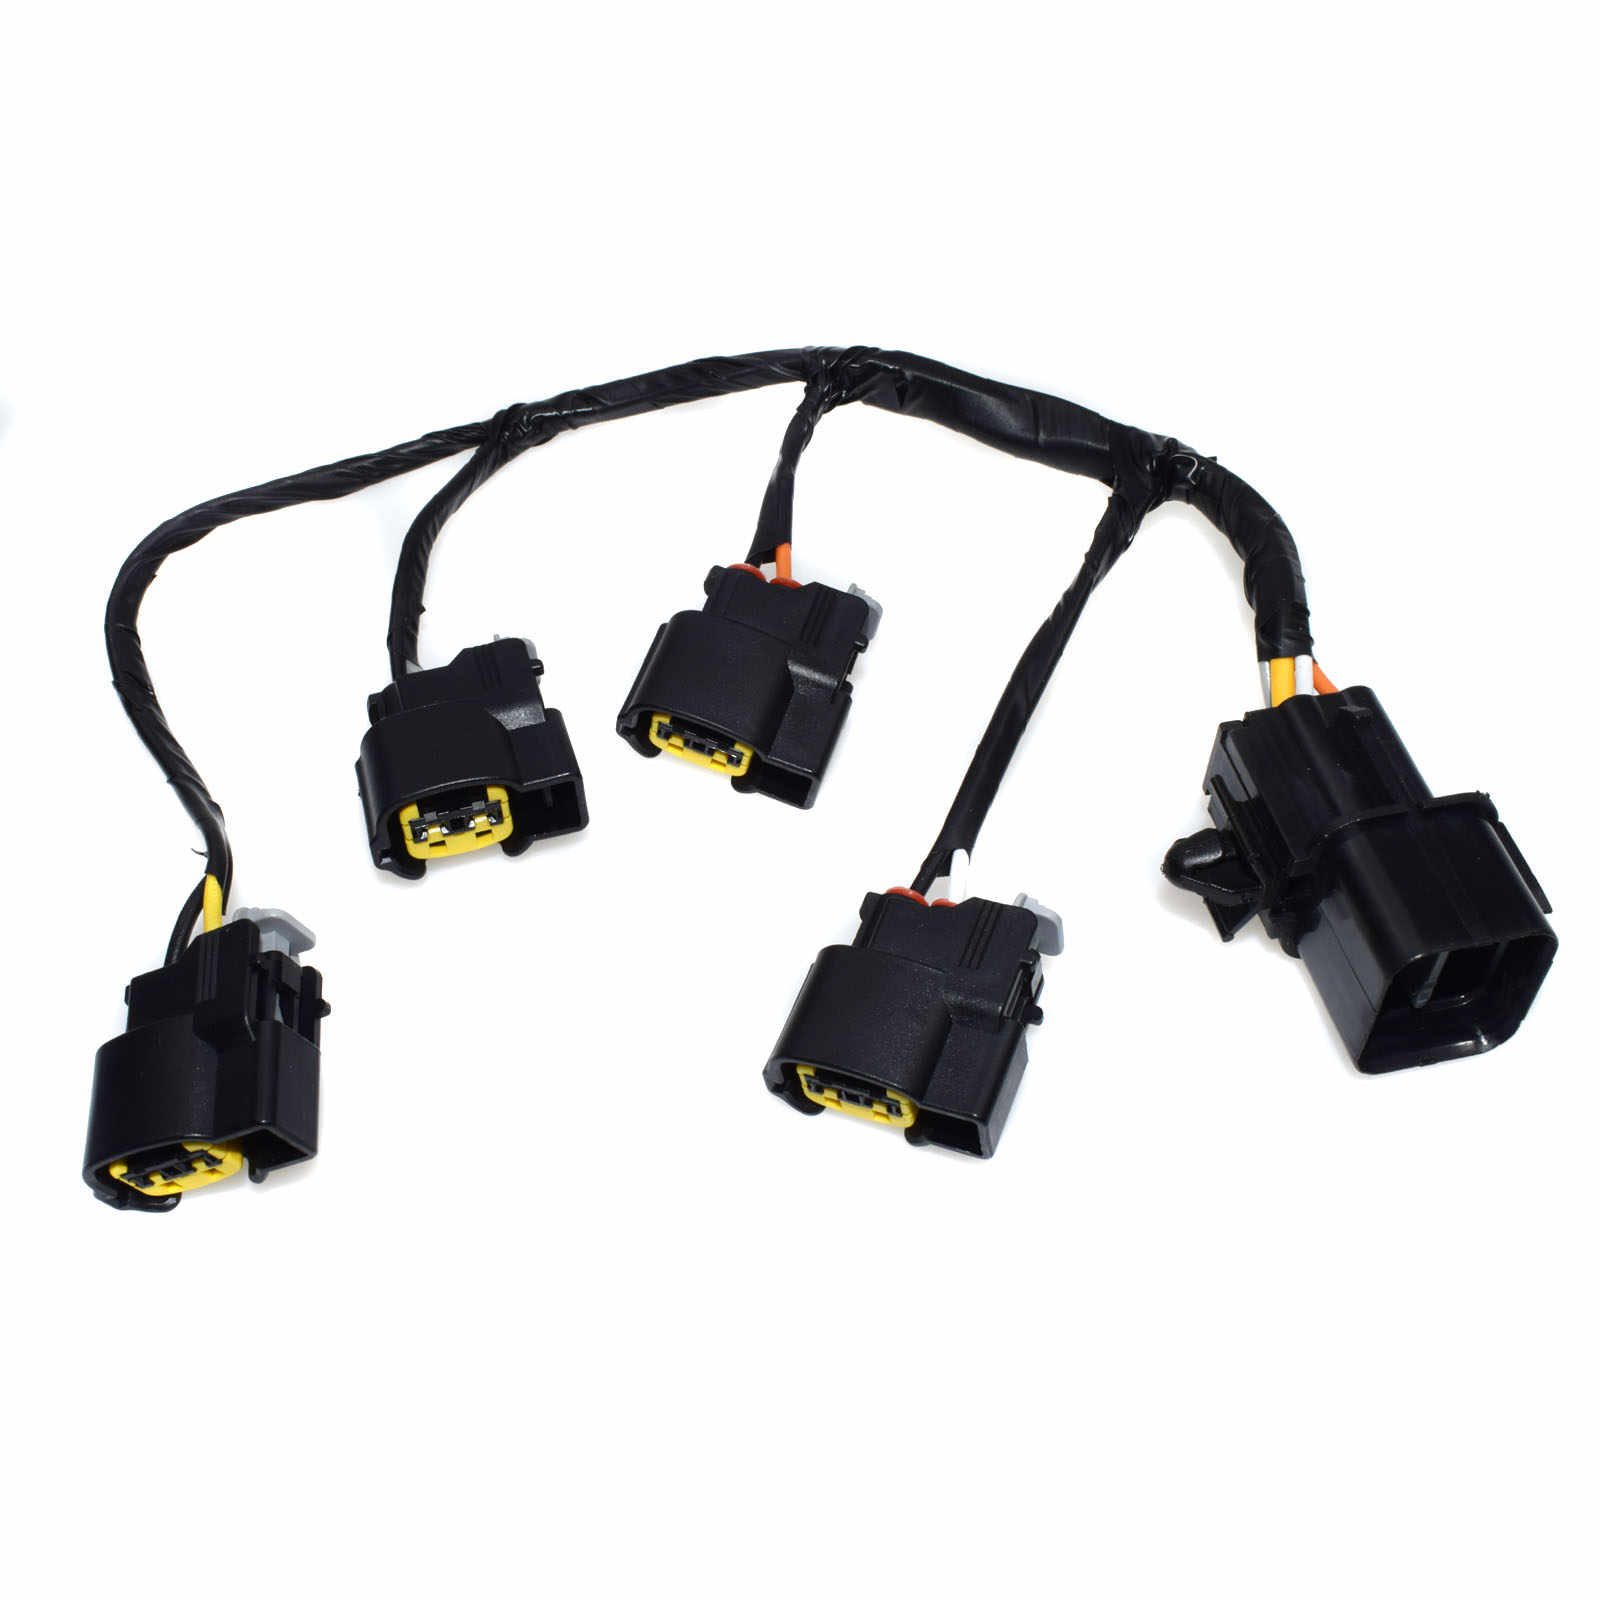 small resolution of  wolfigo new ignition coil wire harness for hyundai veloster kia rio soul 273502b000 27350 2b000 27301